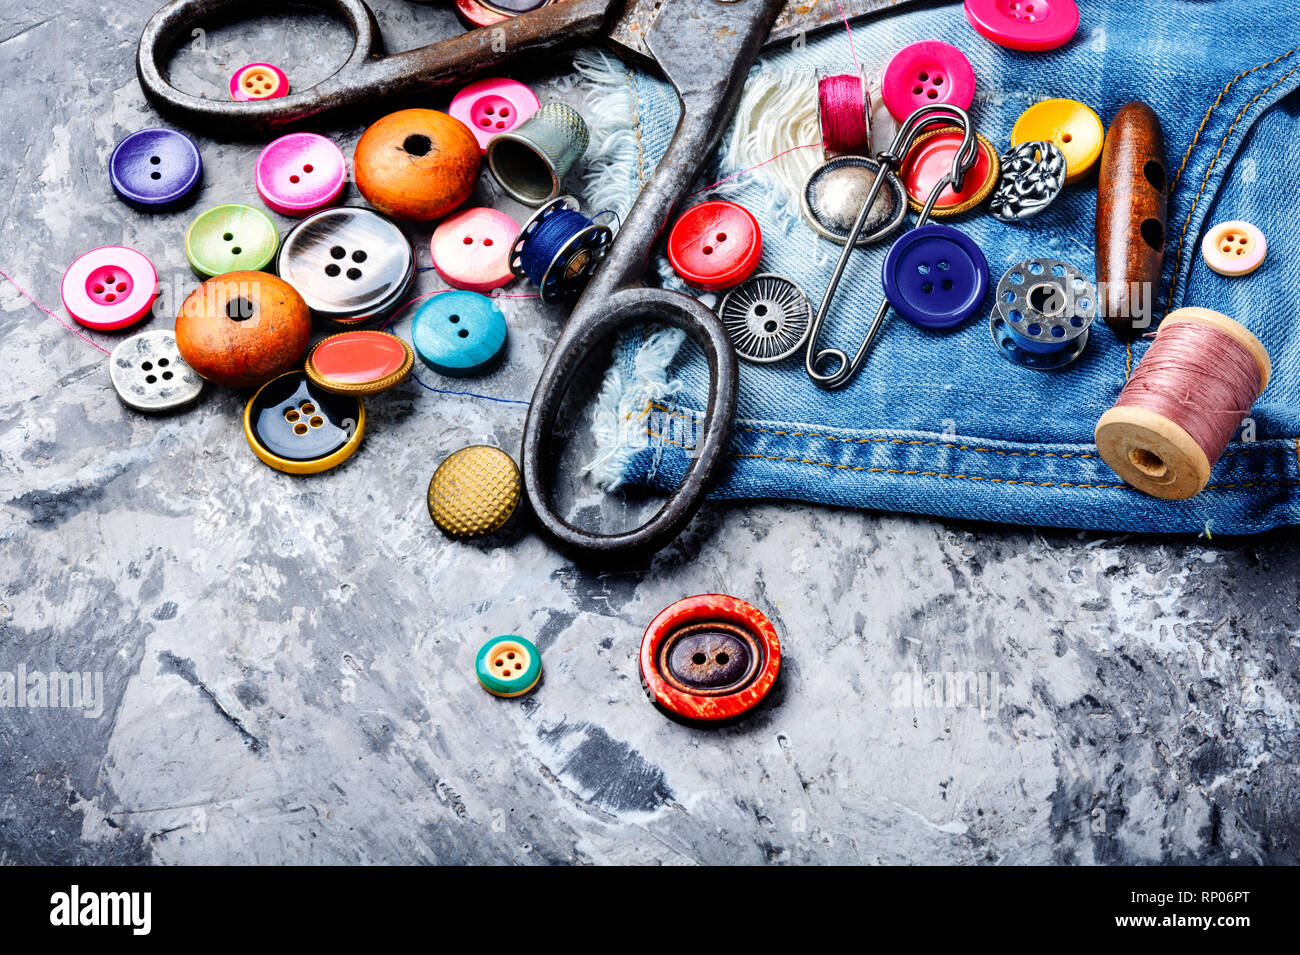 Sewing threads, fabric and buttons Sewing kit Sewing